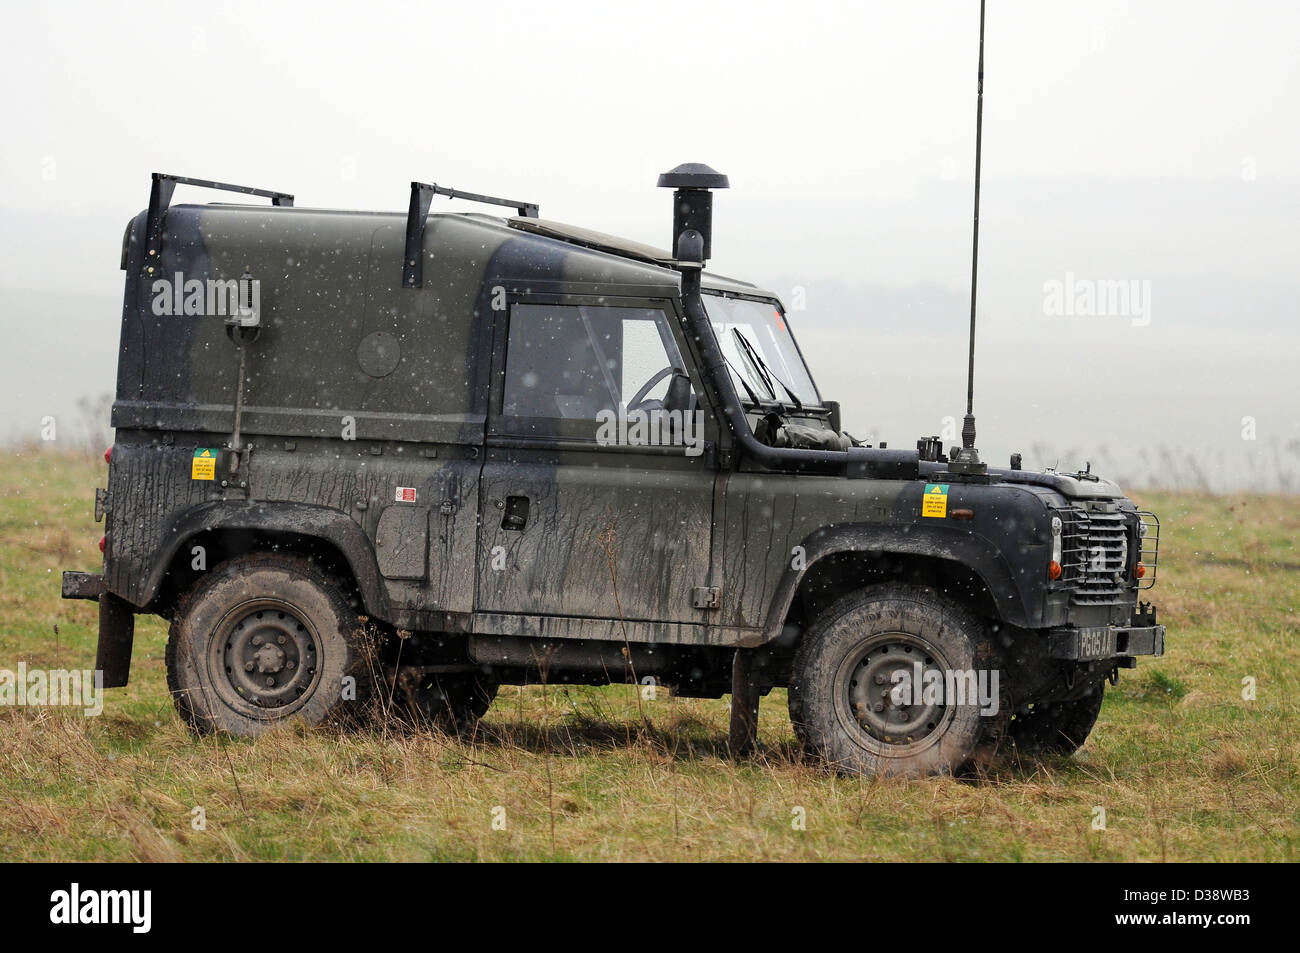 military land rover stock photos military land rover. Black Bedroom Furniture Sets. Home Design Ideas